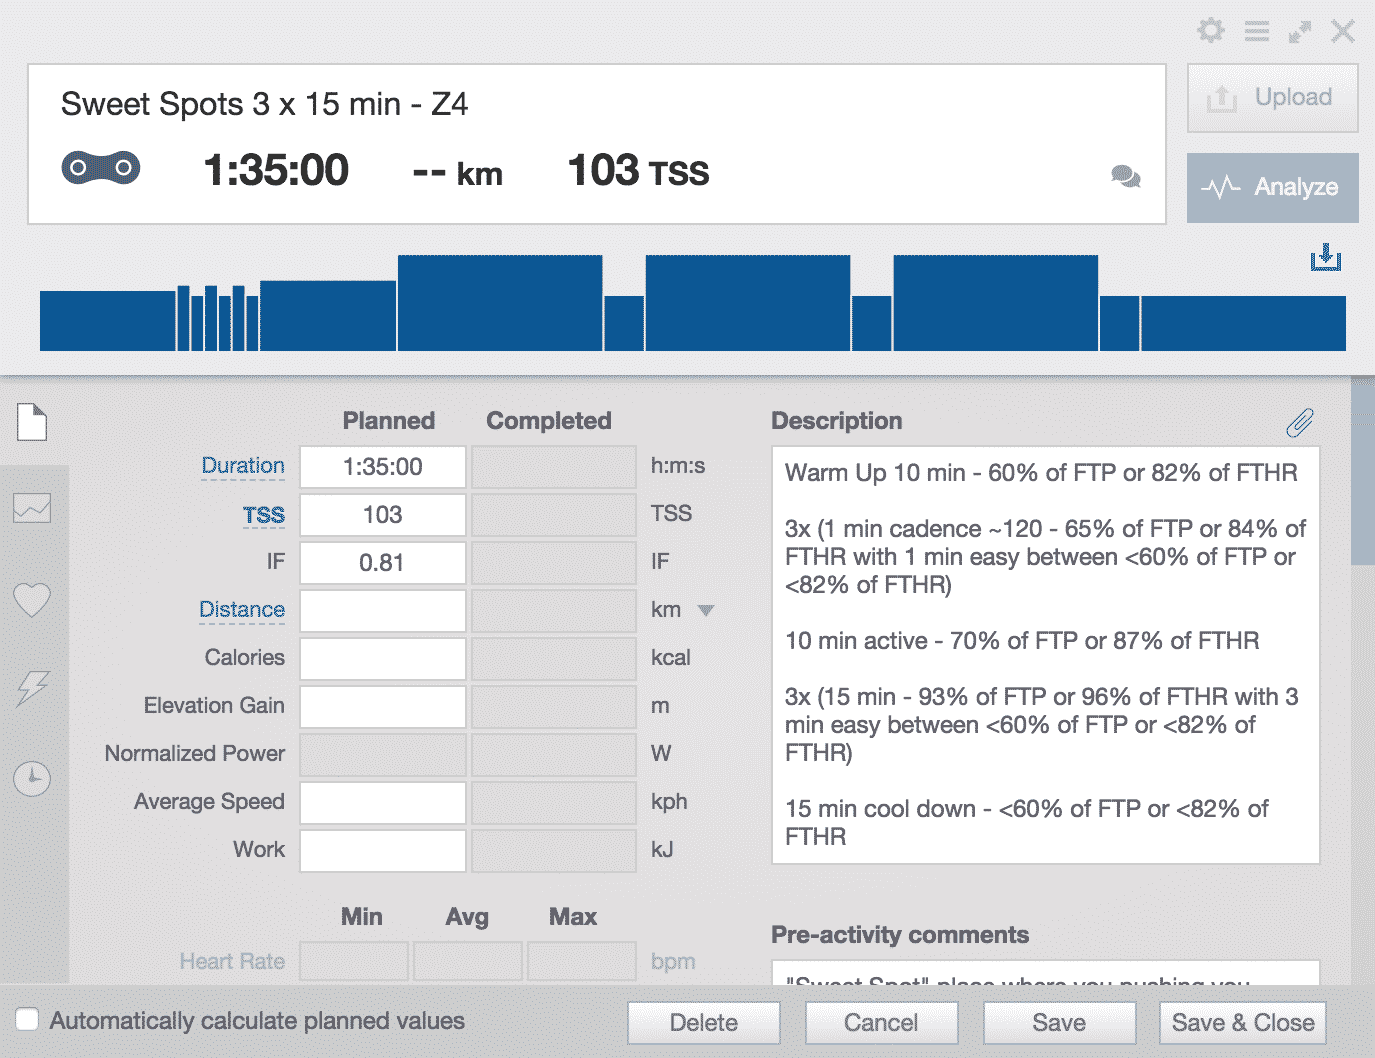 Cycling training plan - Sweet Spots